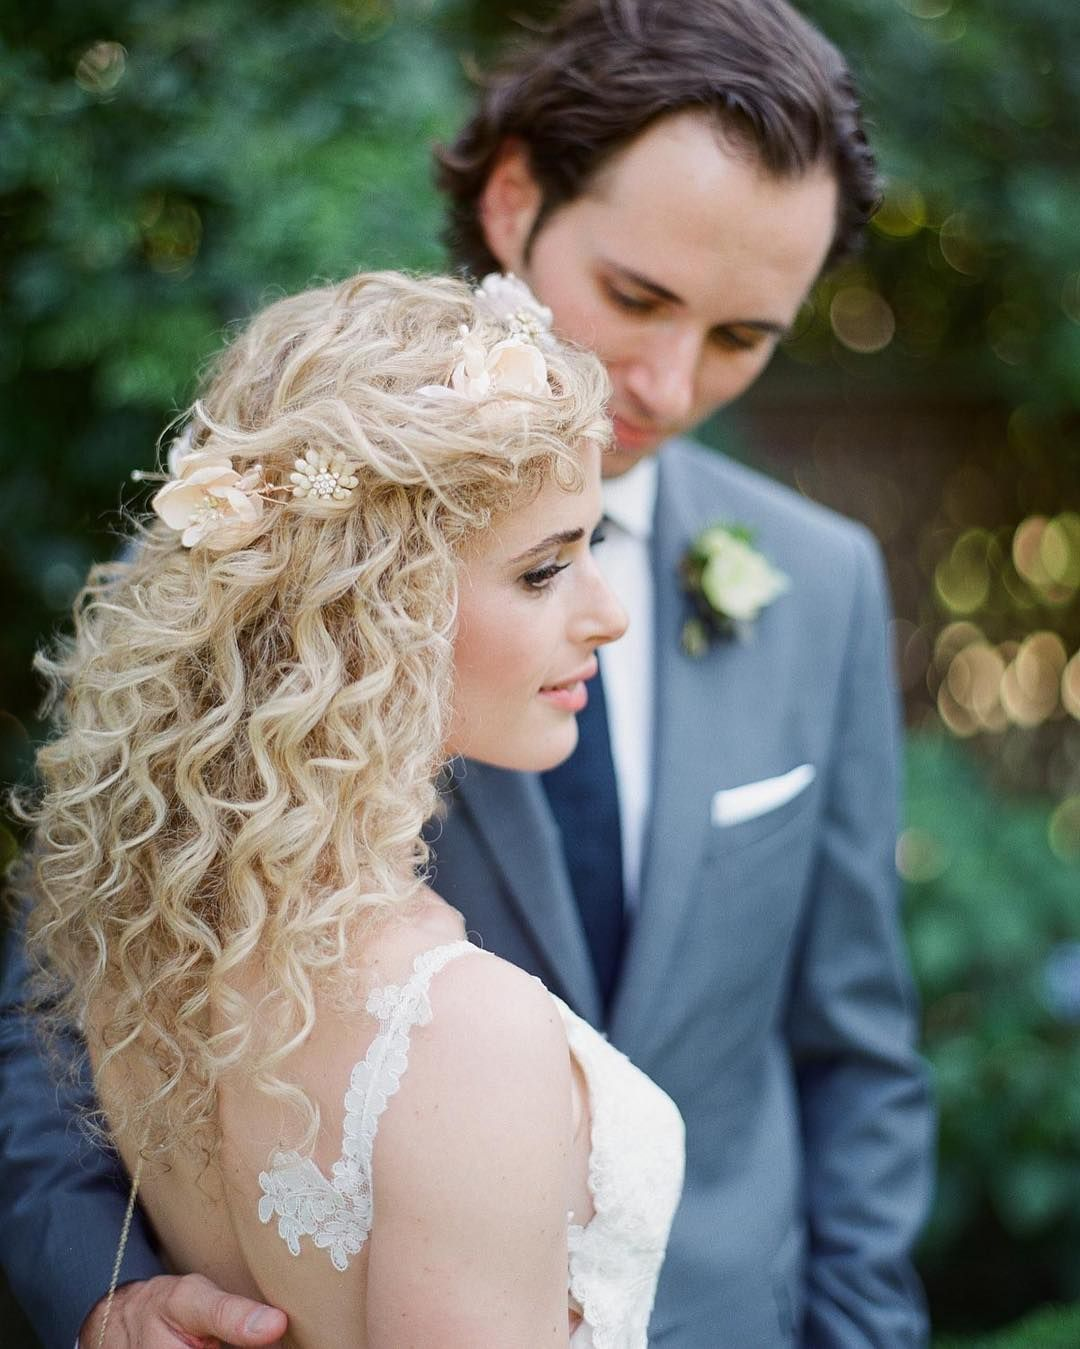 6 Instagram Worthy Wedding Hairstyles For Brides With Naturally Curly Hair Weddinghairdown In 2020 Curly Wedding Hair Curly Bridal Hair Curly Hair Styles Naturally